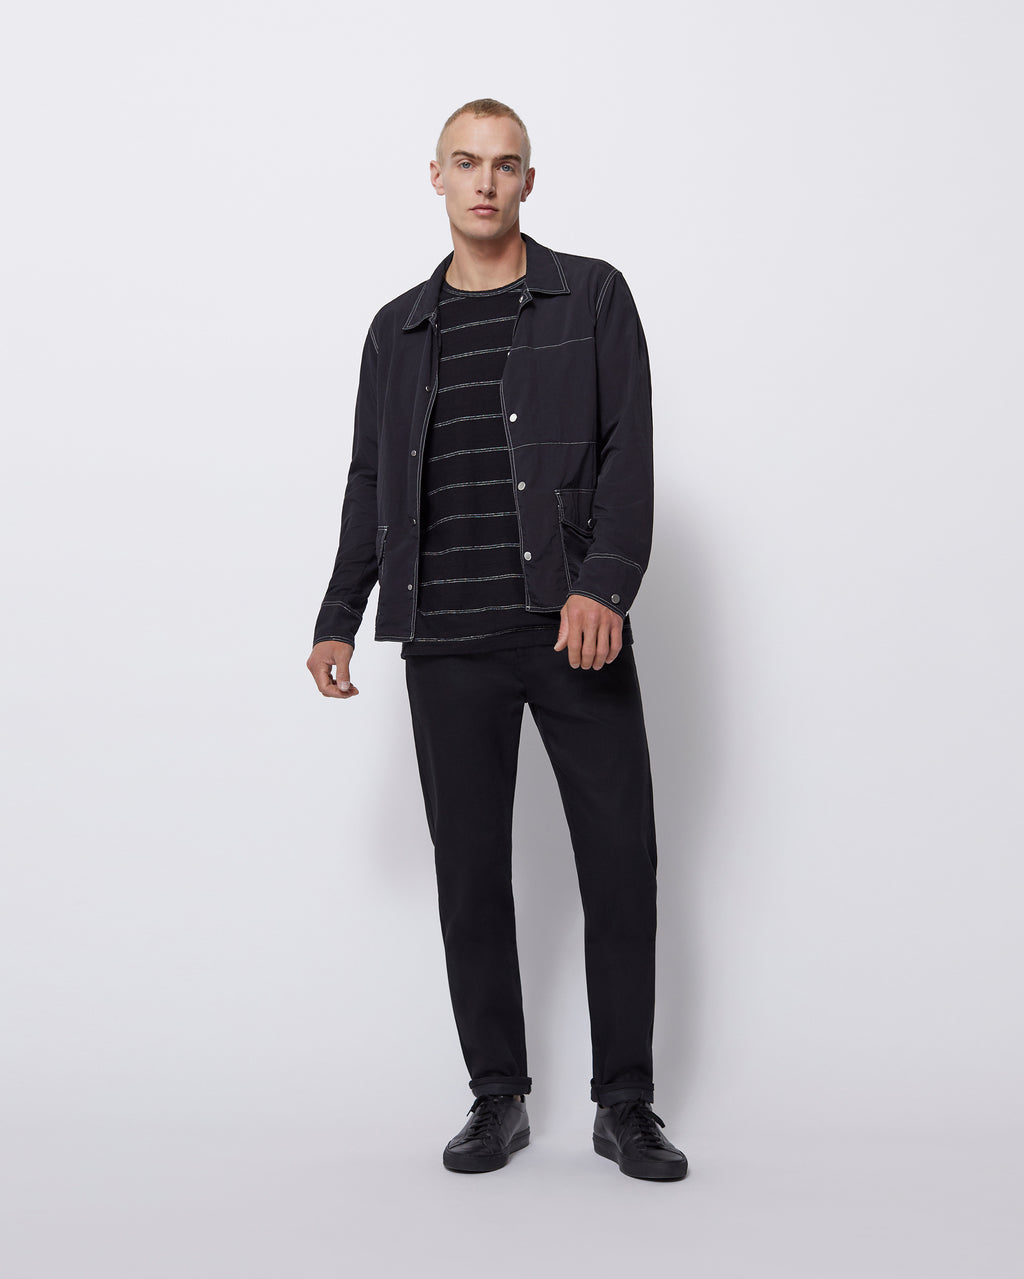 The Garrick Jacket in Black